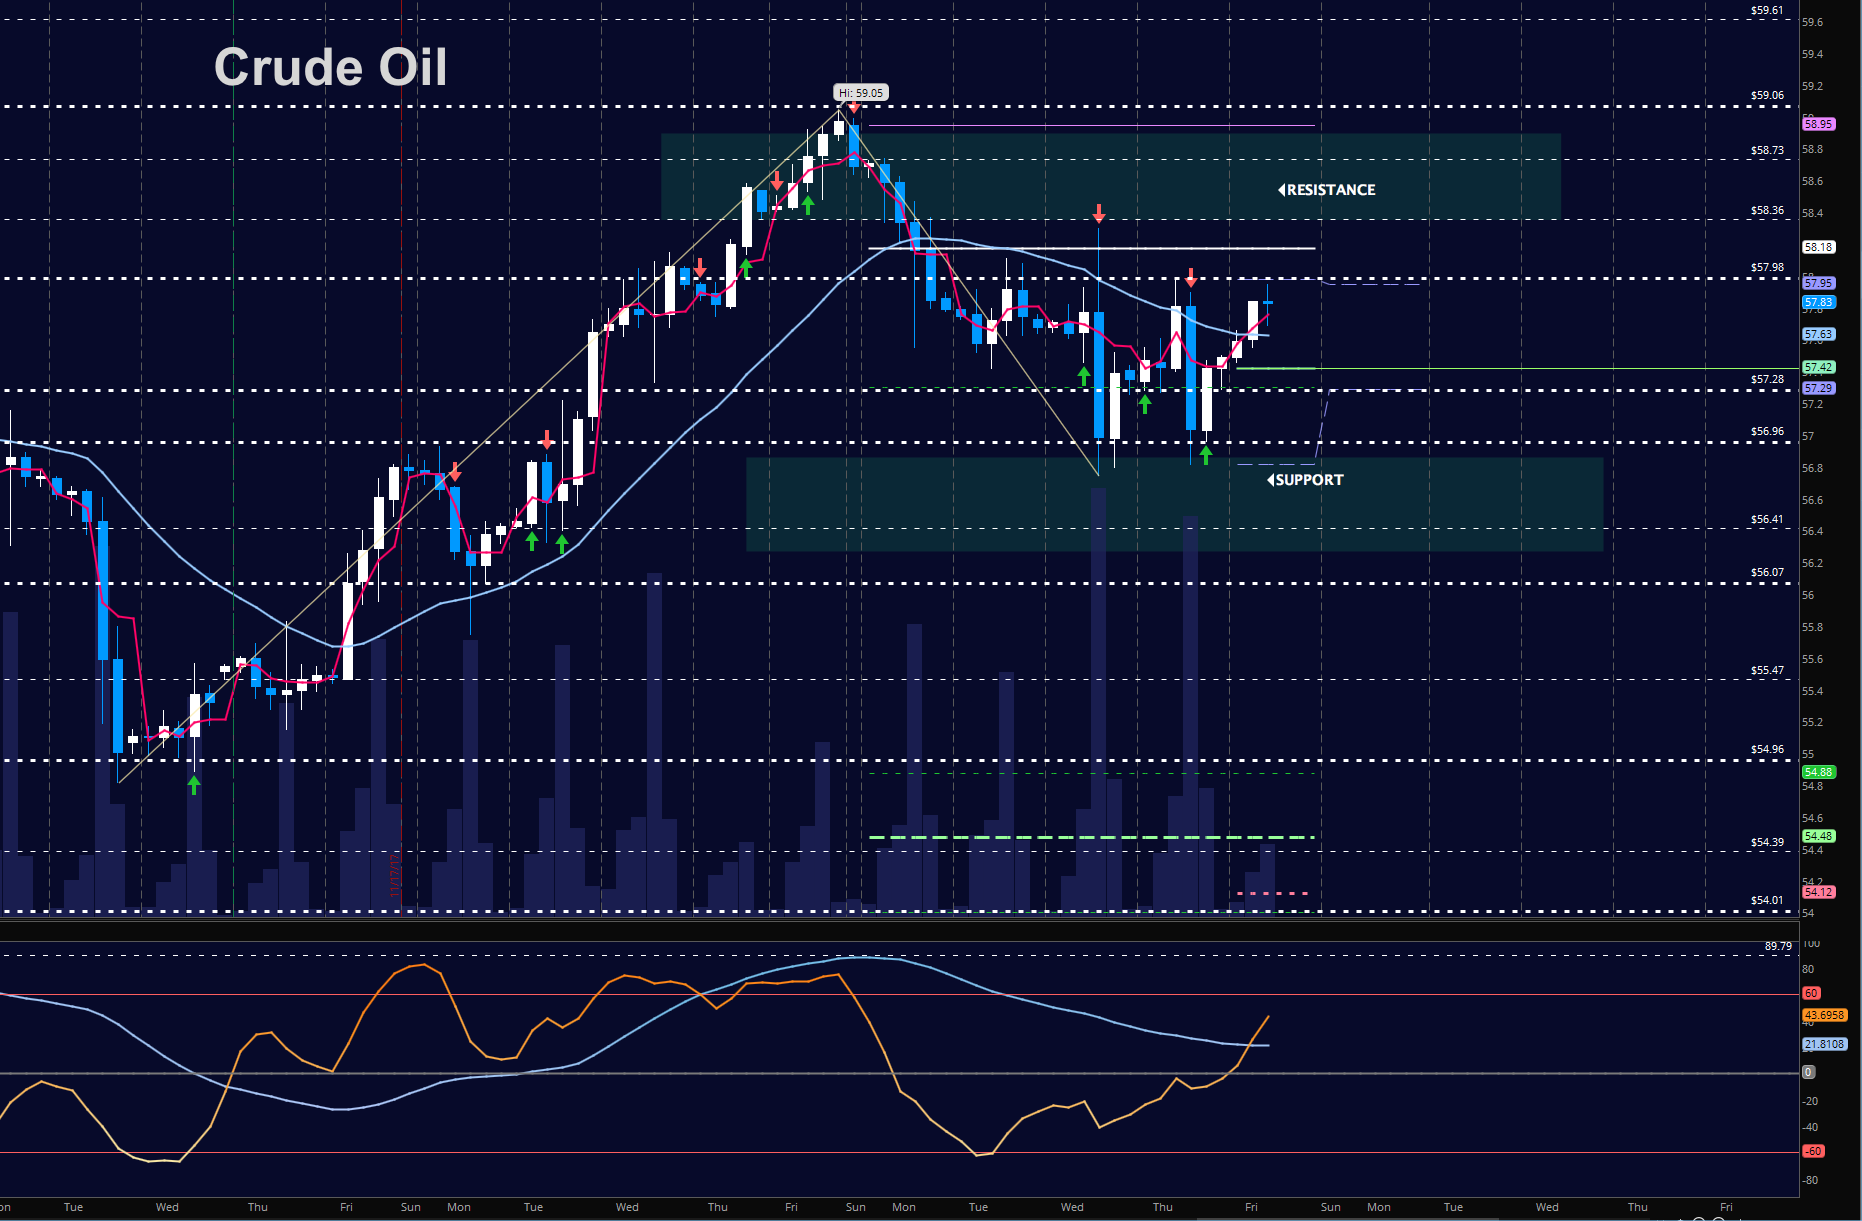 crude oil prices trading december 1 chart_news_update_investing_markets